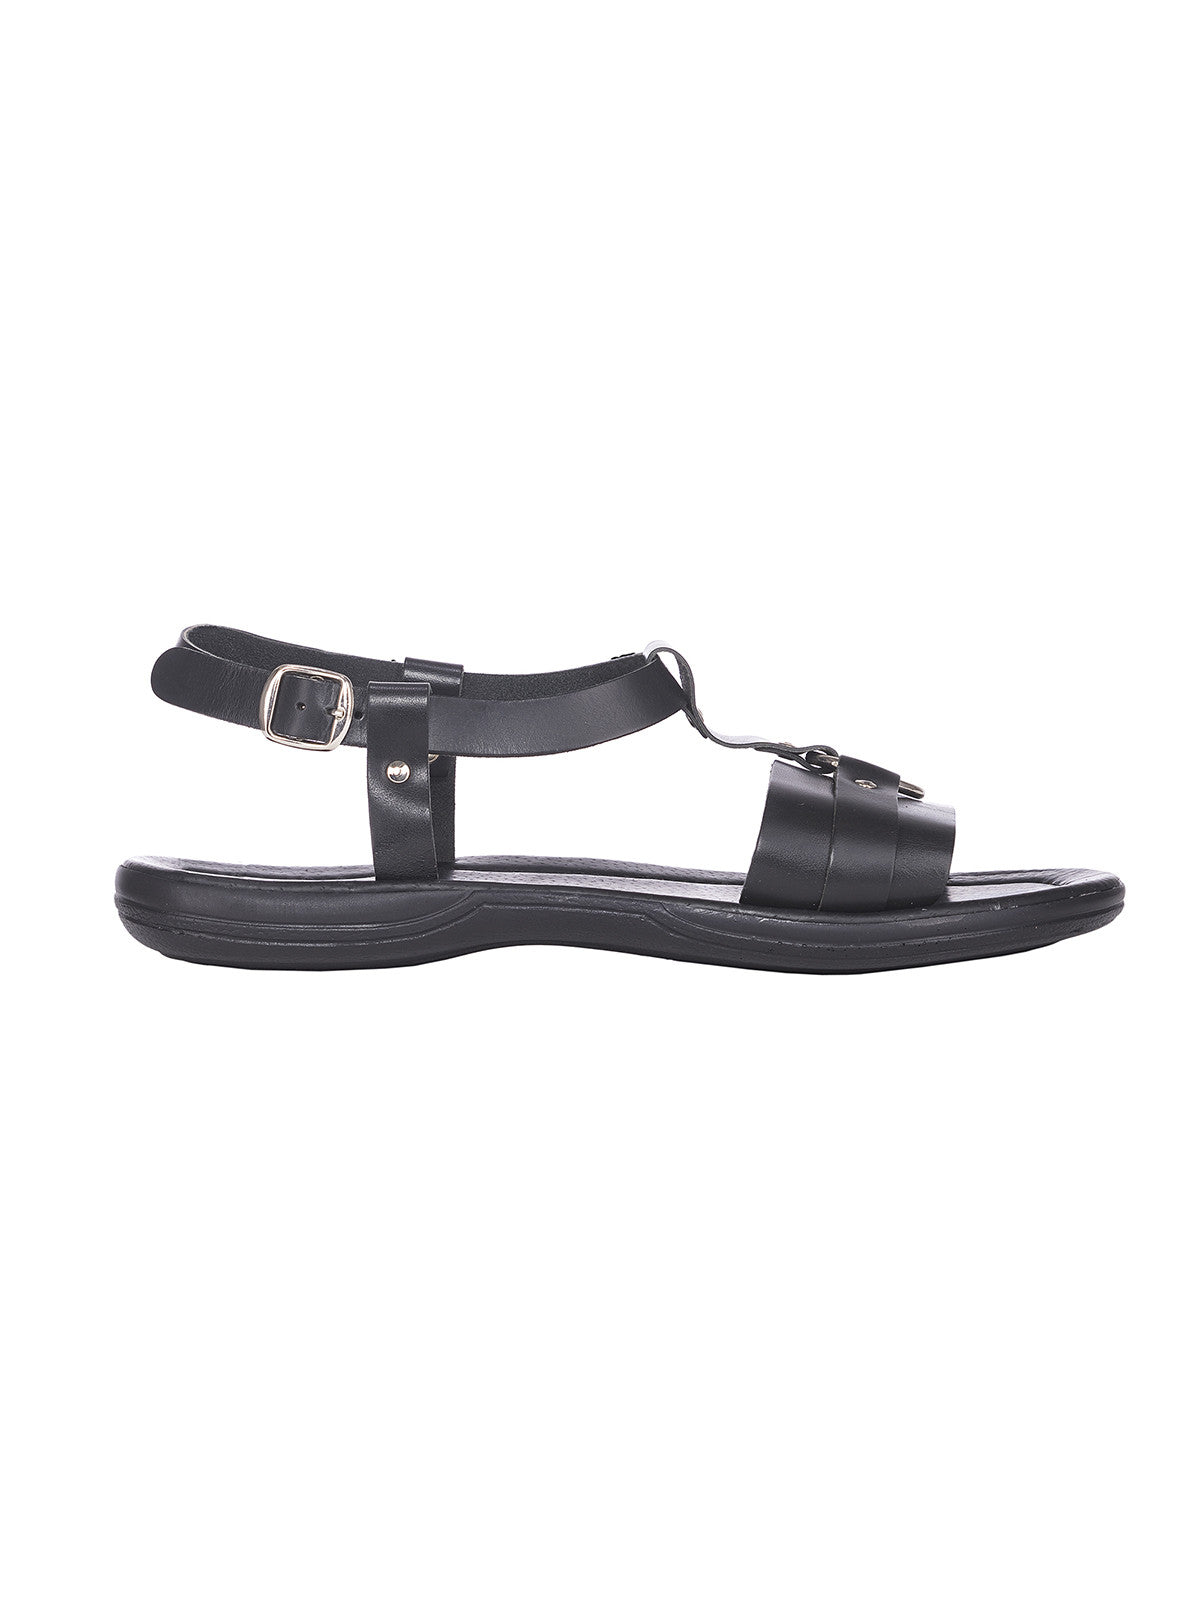 Greek leather leather sandals